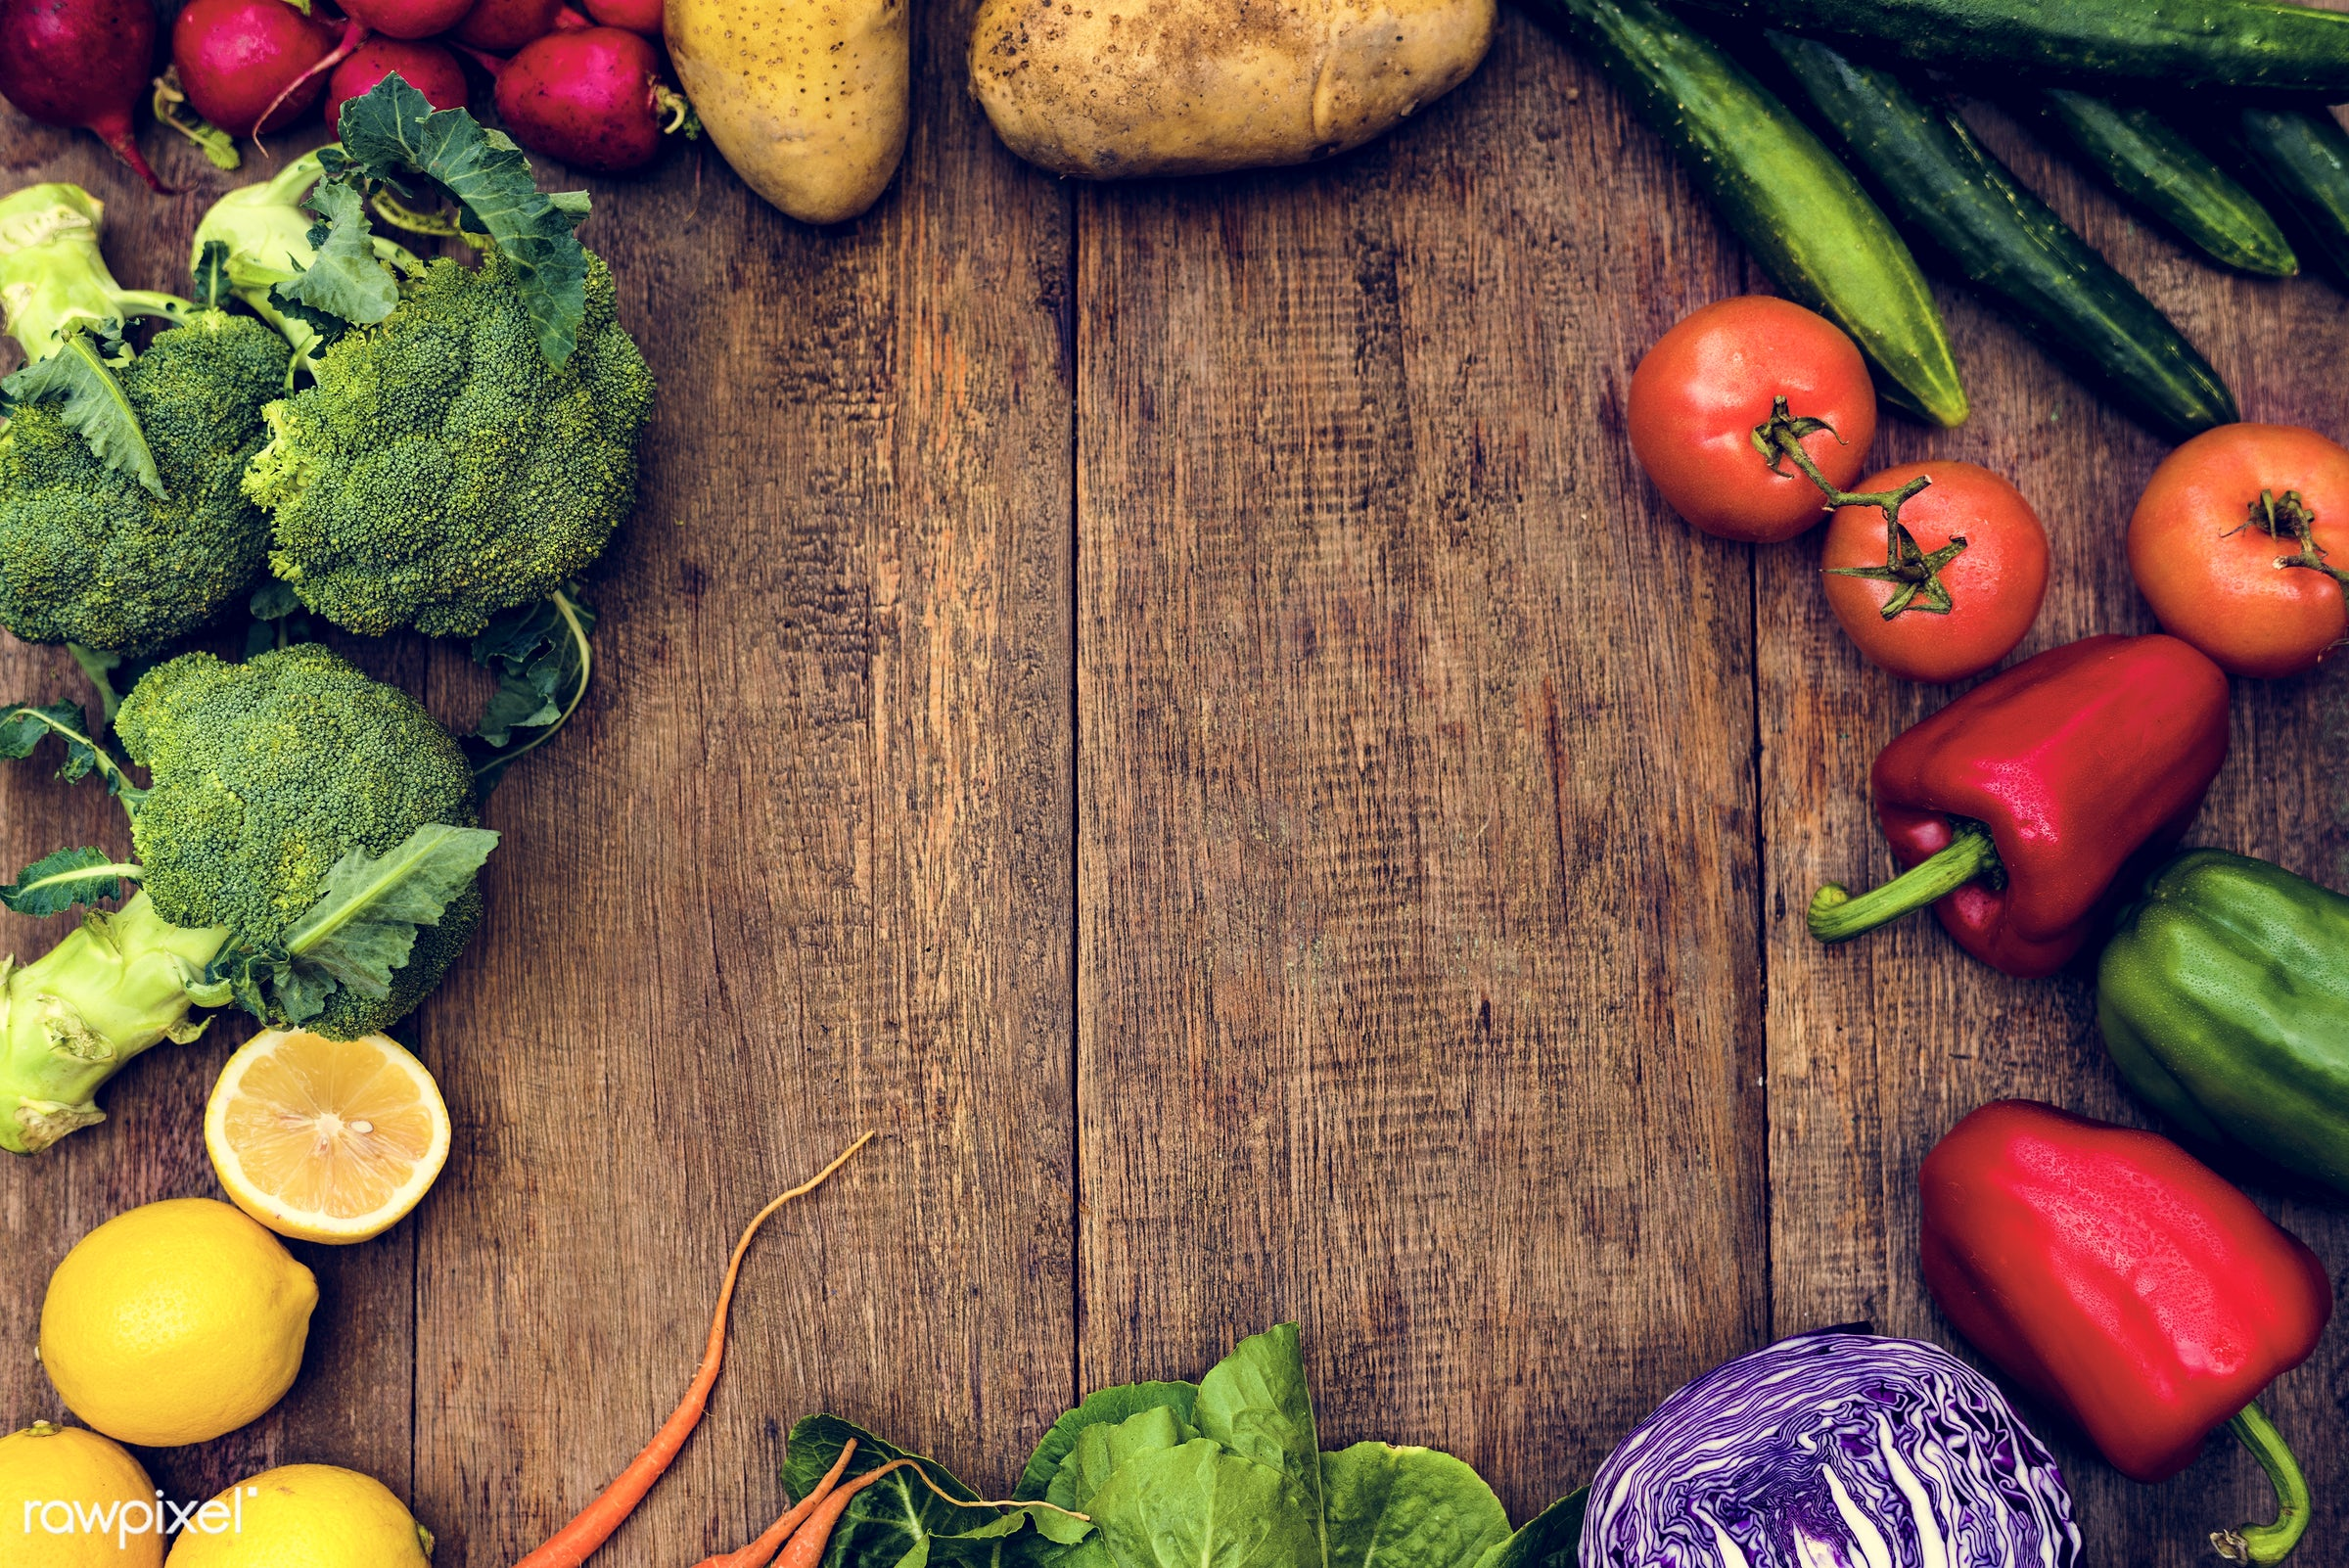 nobody, consumer, farm, cucumber, farmer, fresh, bell peppers, broccoli, products, consumerism, green, beetroot, display,...